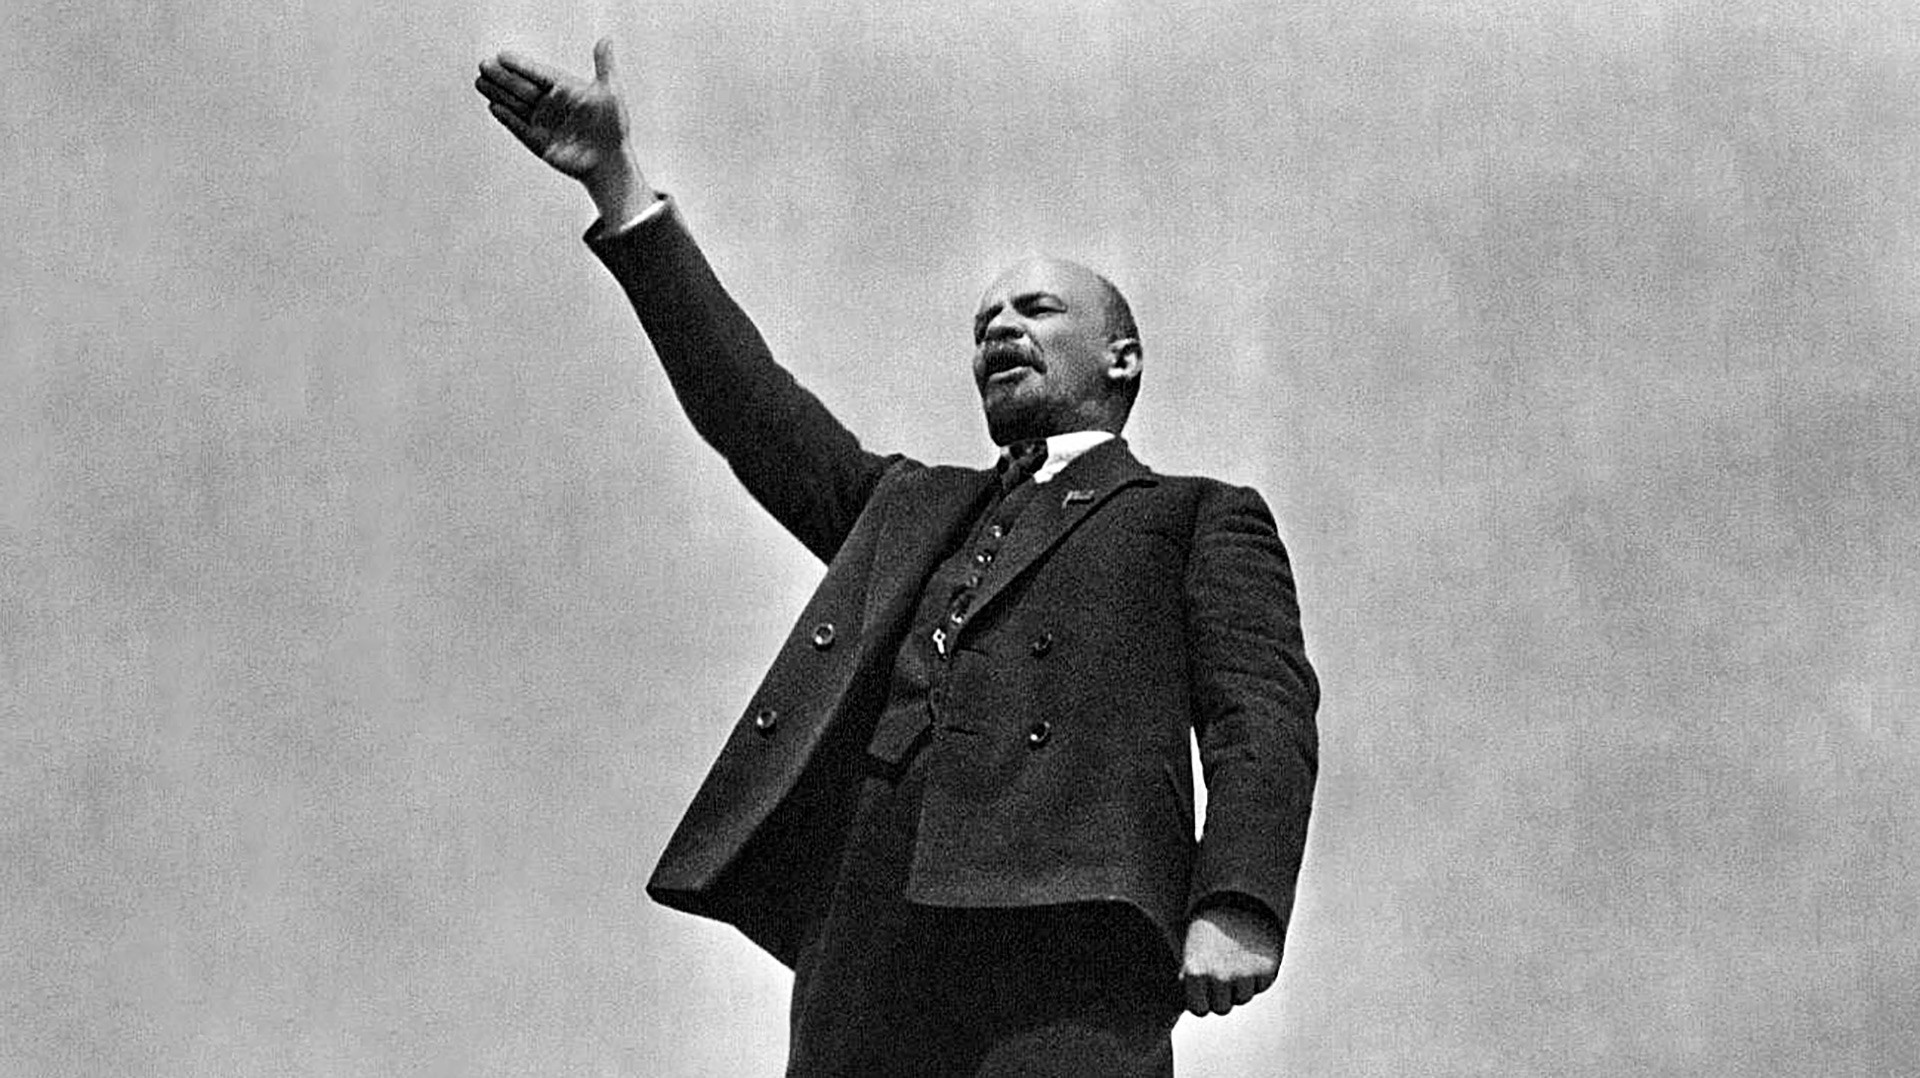 Vladimir Lenin delivering a speech at the Red Square in Moscow